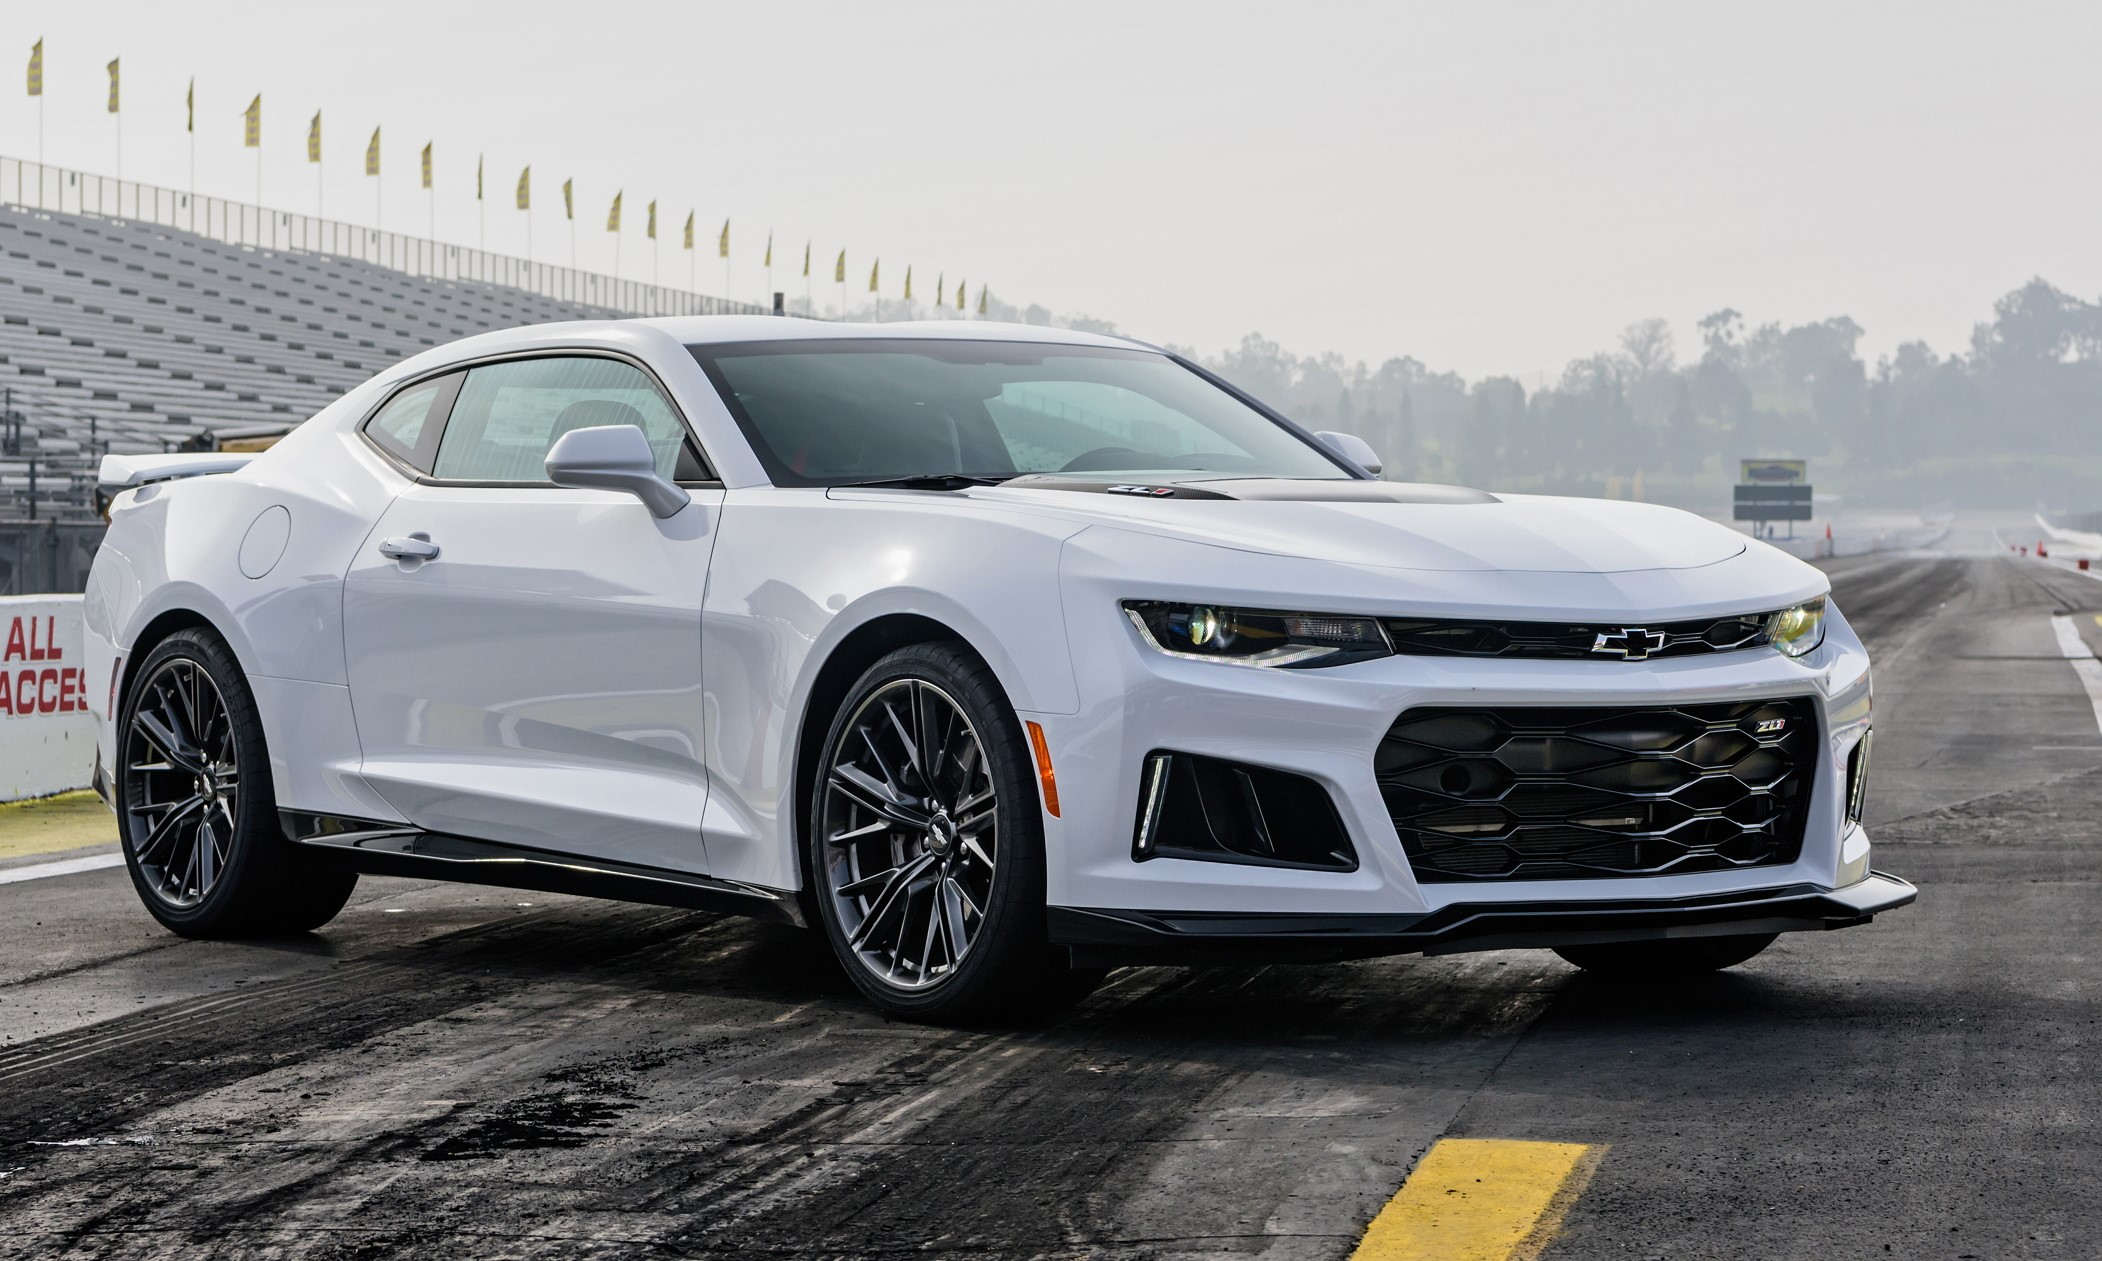 Zl1 Camaro Price Html Autos Post